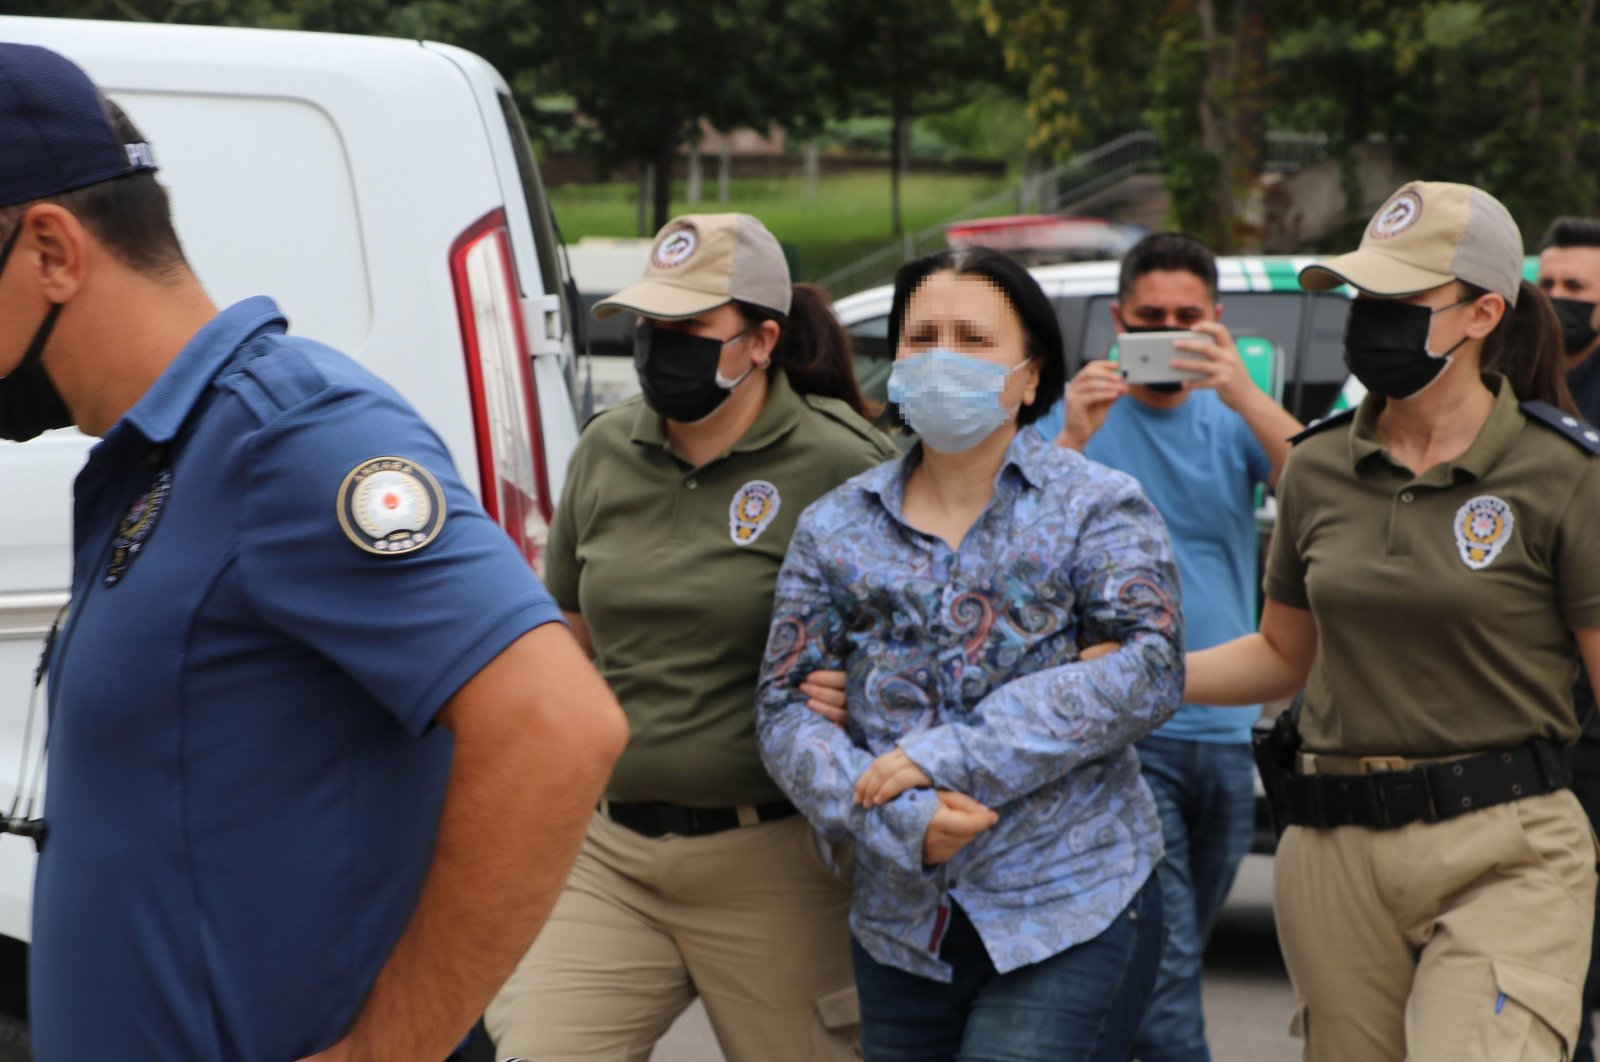 Police escort the suspect after her arrest, in the capital Ankara, Turkey, Aug. 7, 2021. (DHA Photo)